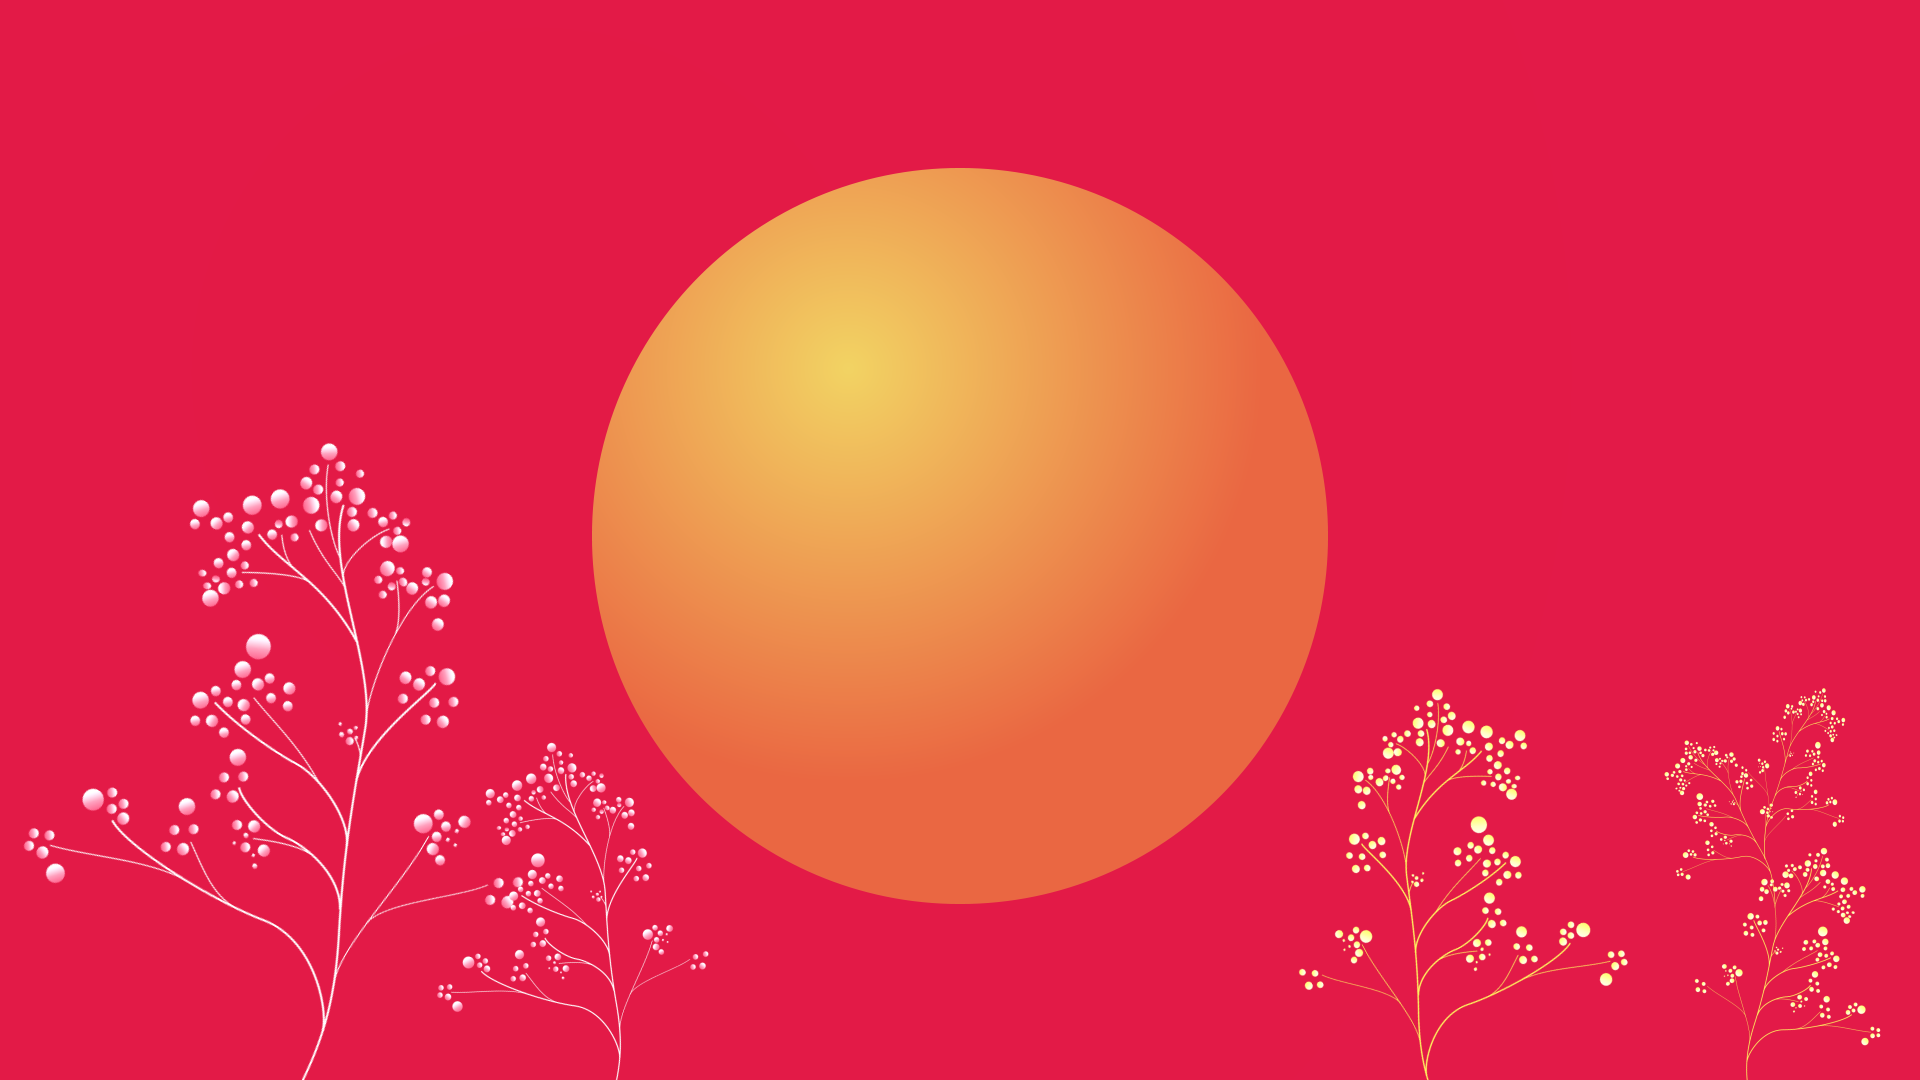 Customer experience, inner circle of e-commerce, yellow circle on red background with growing purple and yellow plants.